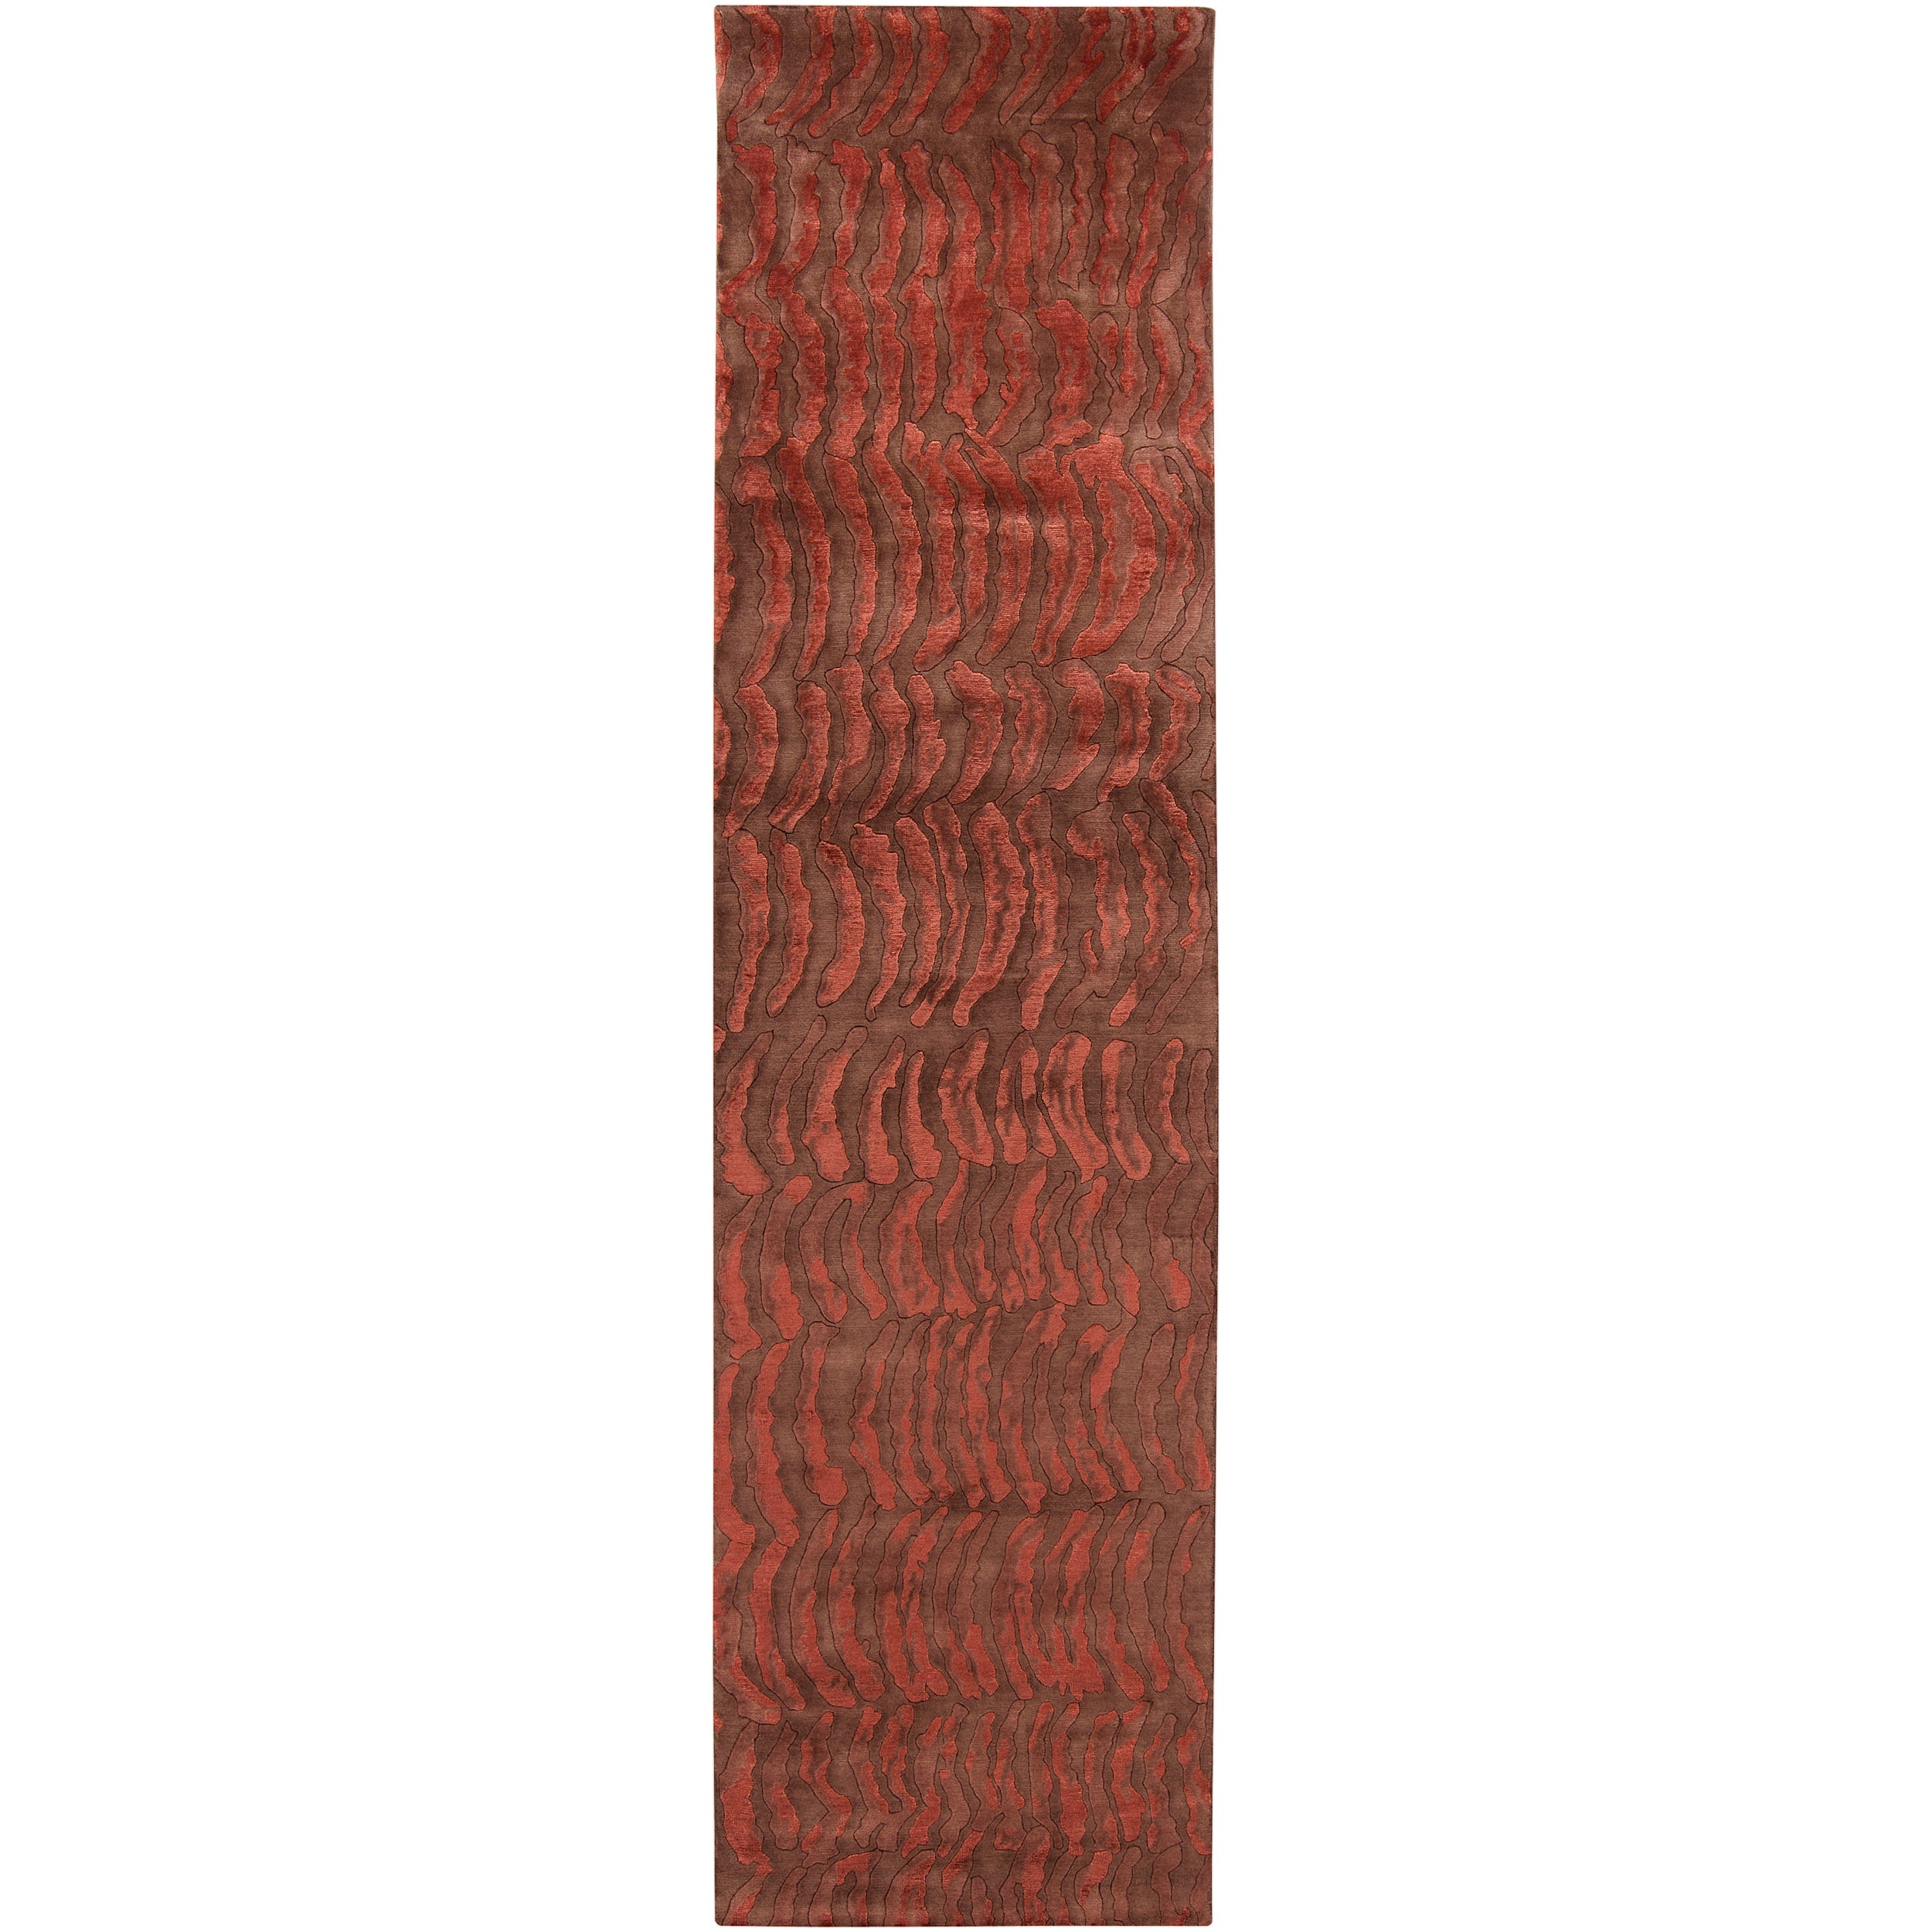 Contemporary Julie Cohn Hand-knotted Multicolored Vilas Abstract Design Wool Rug (2 '6 x 10')